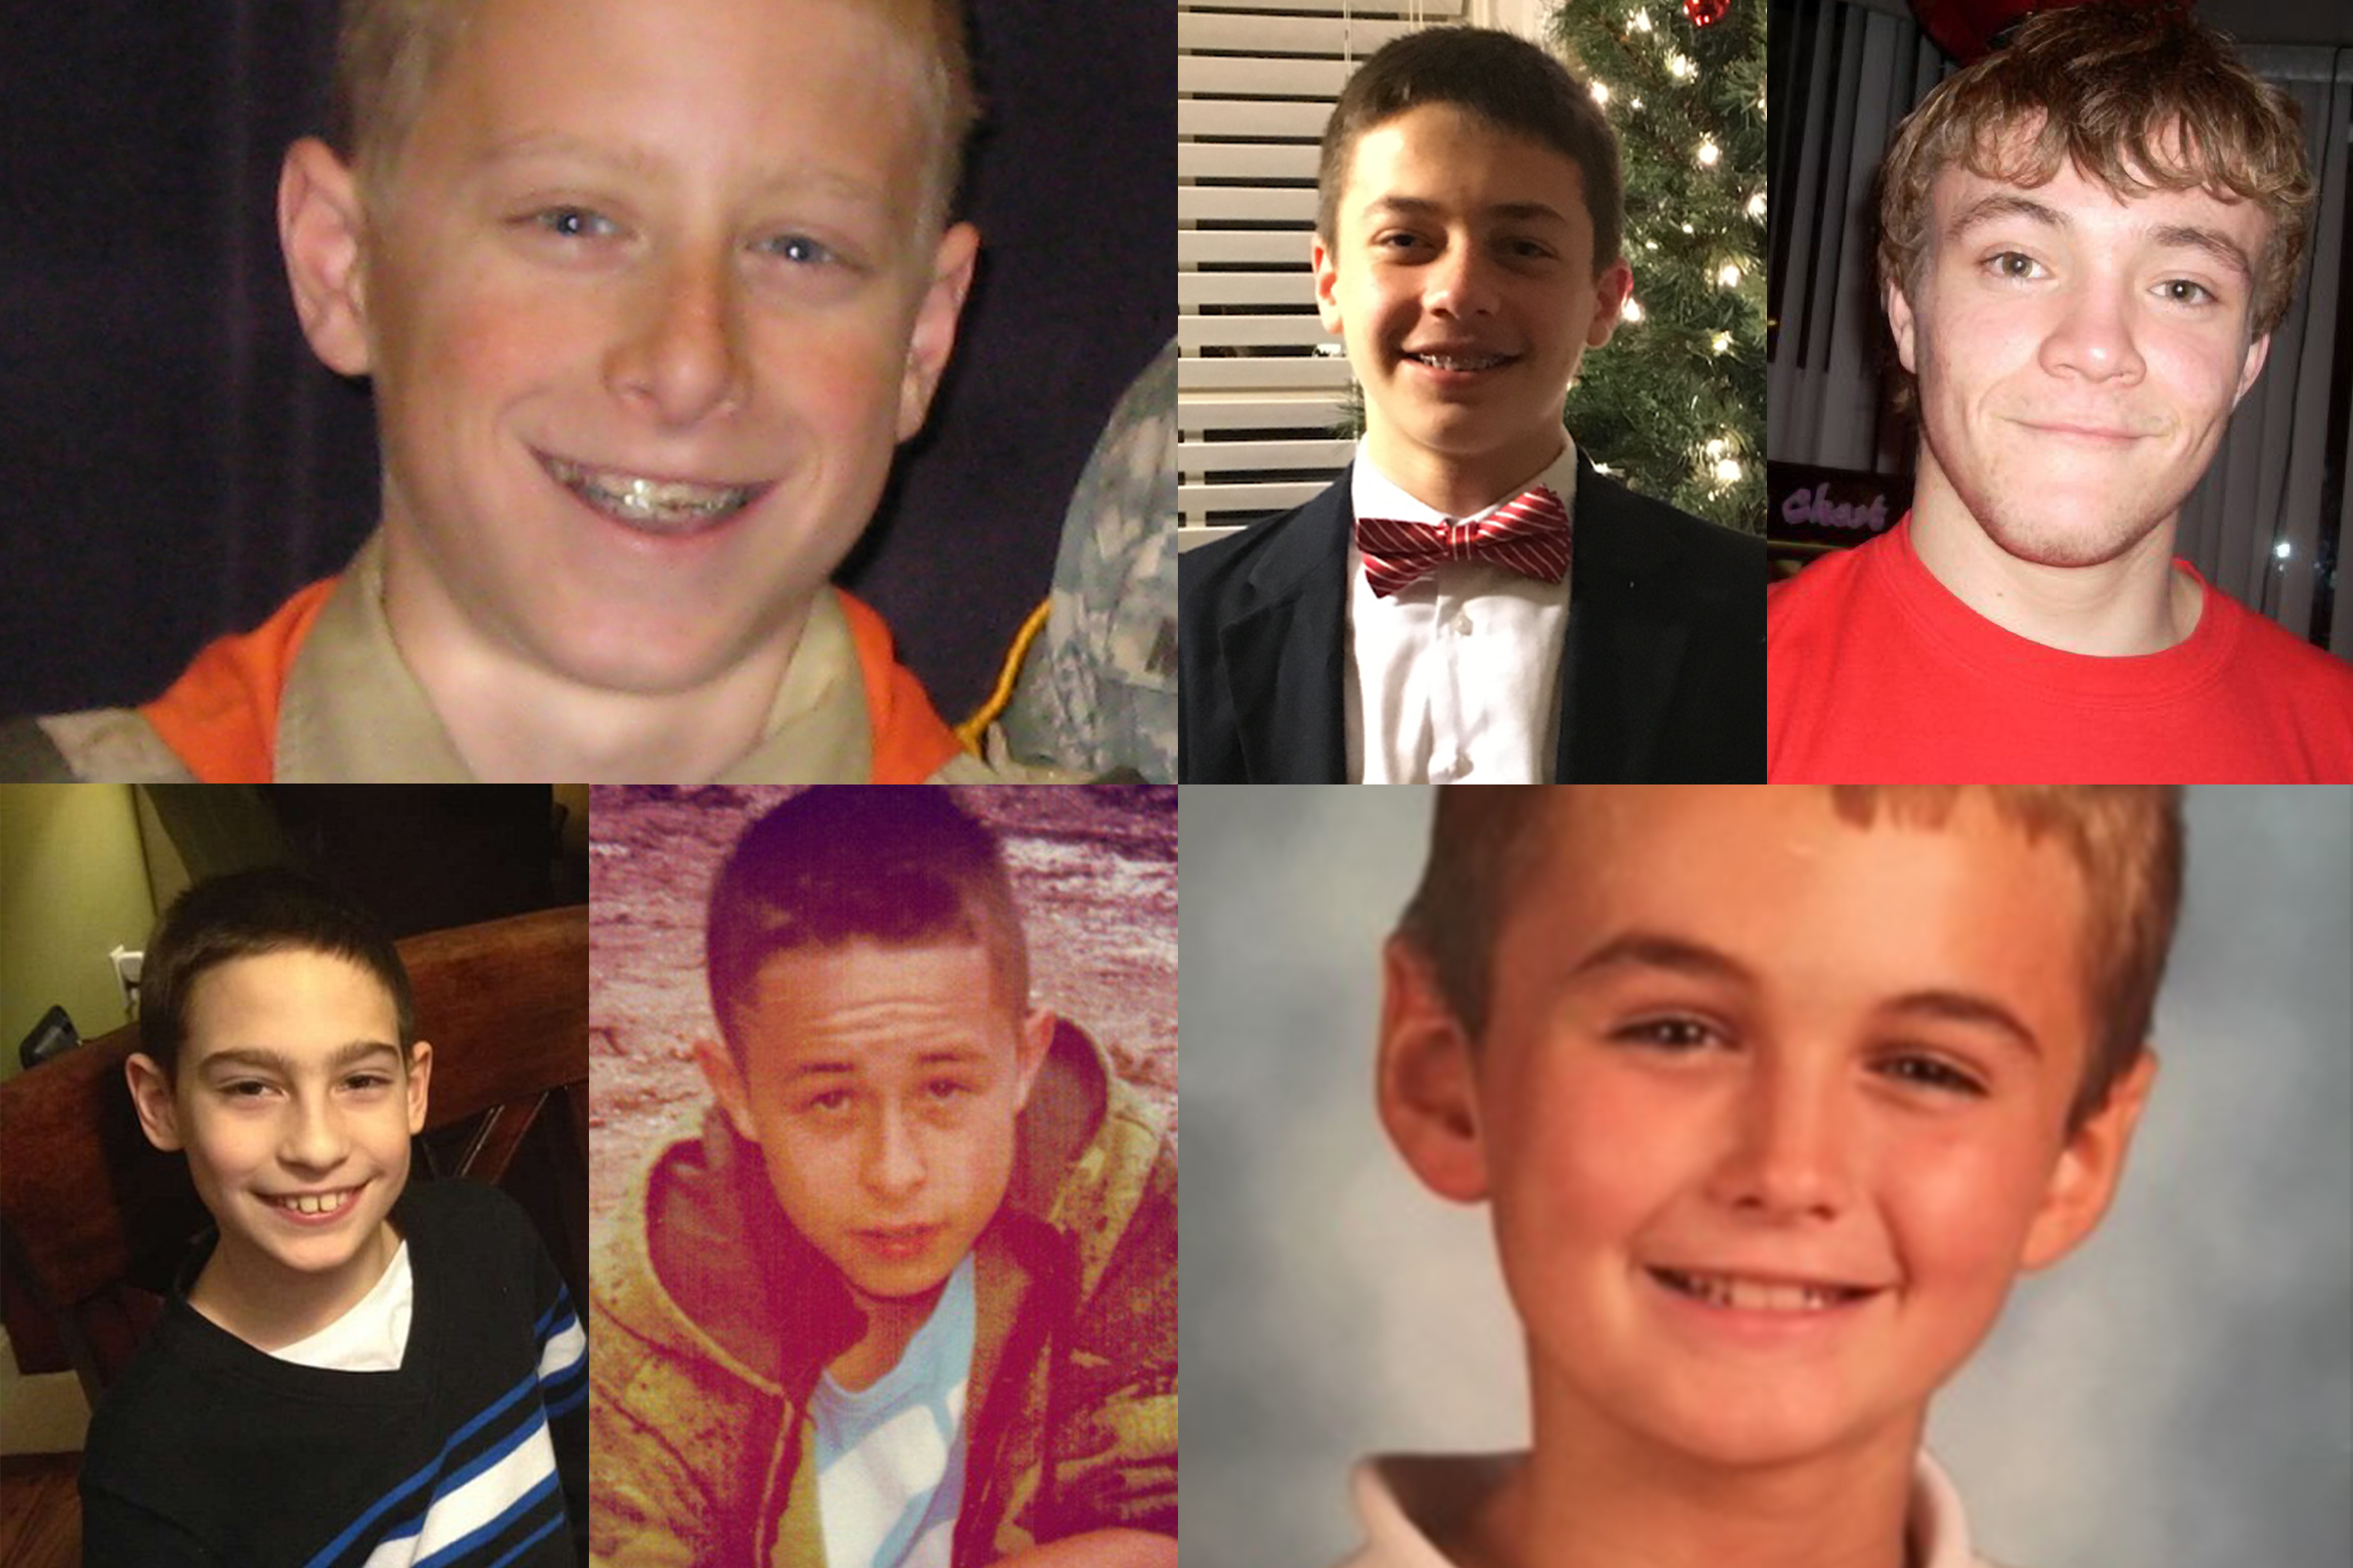 These six boys are among the many children and teenagers in the U.S. who have died from playing the Choking Game. Clockwise from top left: Erik Robinson was 12 when he died in California in 2010; Carson Steele was 14 when he died in South Carolina in 2016; Mack Jensen was 17 when he died in Wisconsin in 2009; Garrett Pope was 11 when he died in South Carolina in 2016; Tristan Farnsworth was 13 when he died in Utah in 2012; Evan Ziemniak was 12 when he died in Pennsylvania in 2016.